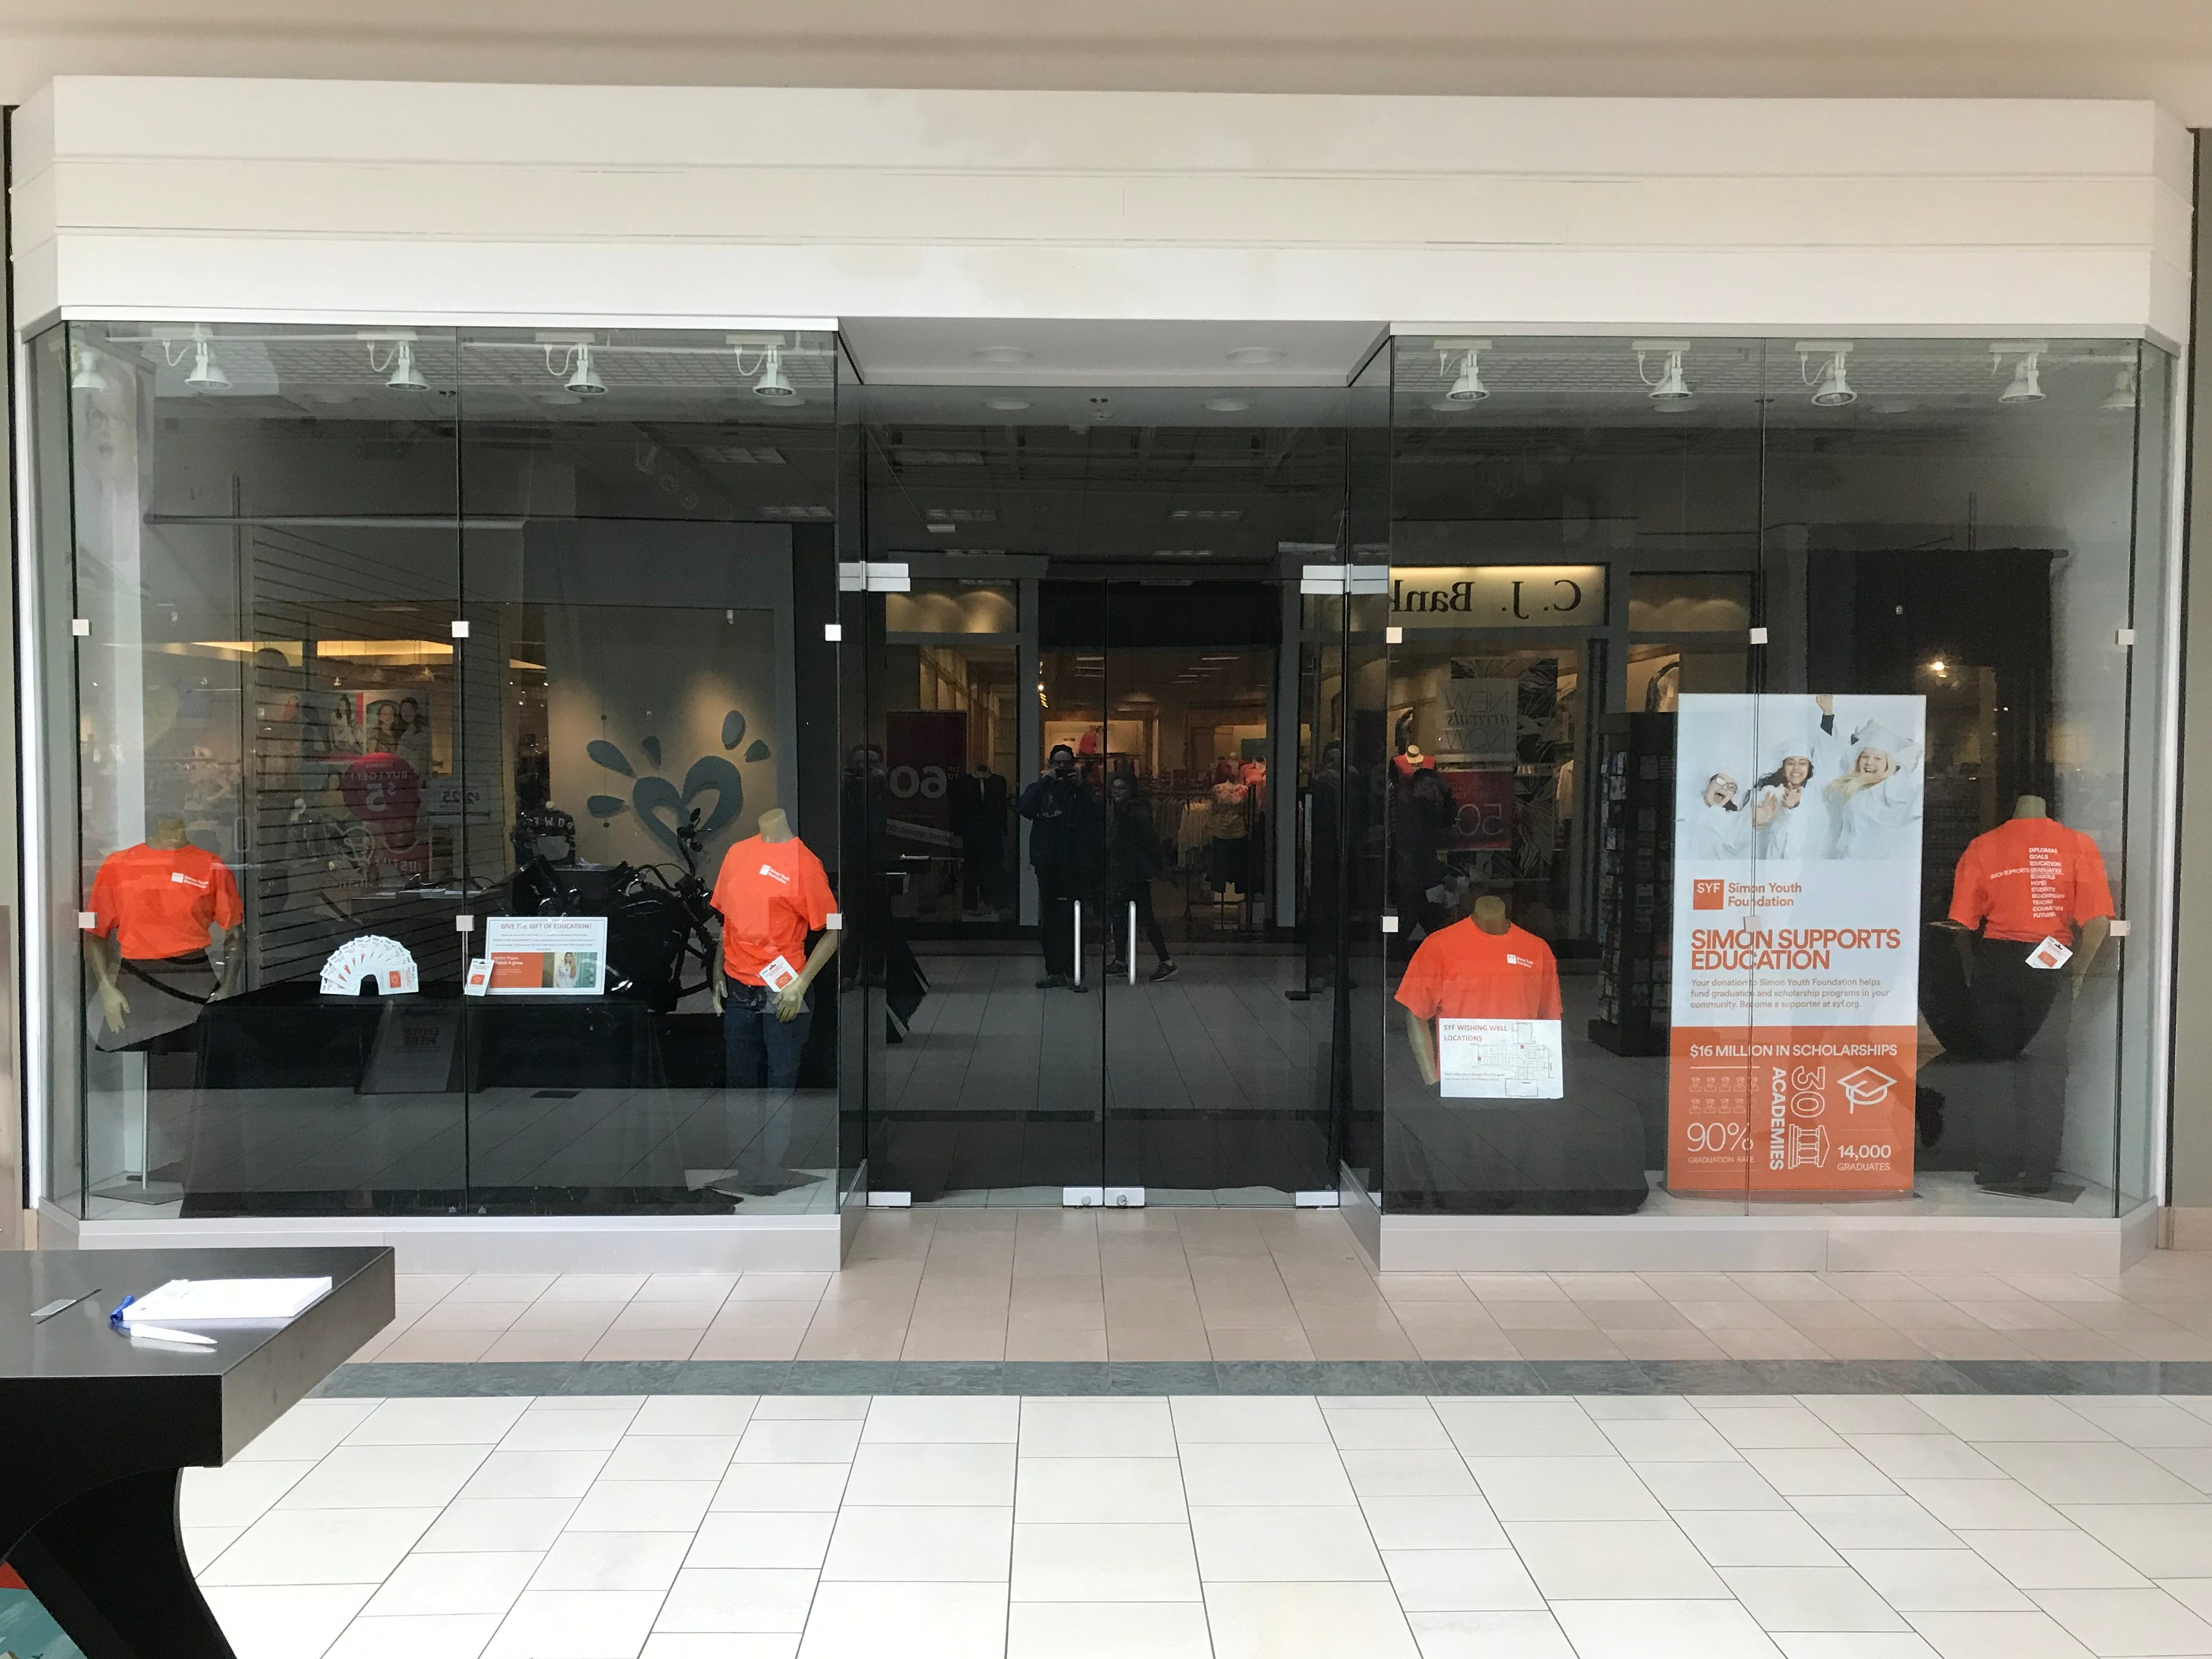 A Simon Sports Education display in the window of a vacant storefront near the Shopko store in Bay Park Square in Bay Park Square in Ashwaubenon.